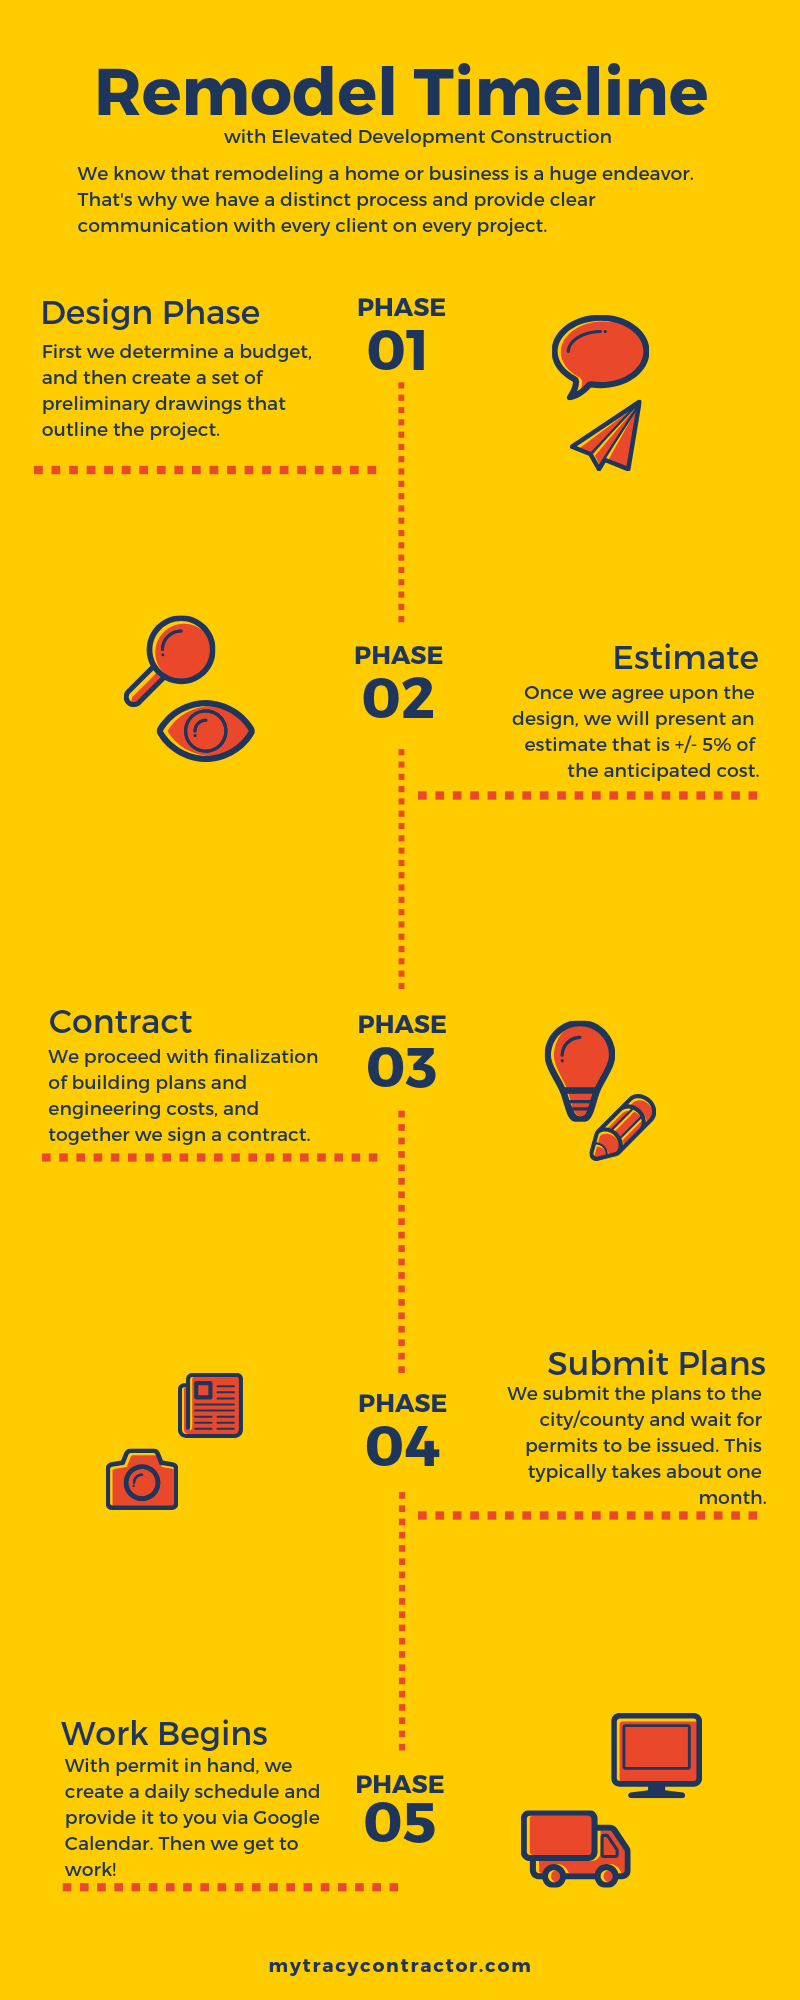 Remodel Timeline infographic by Elevated Development Constuction